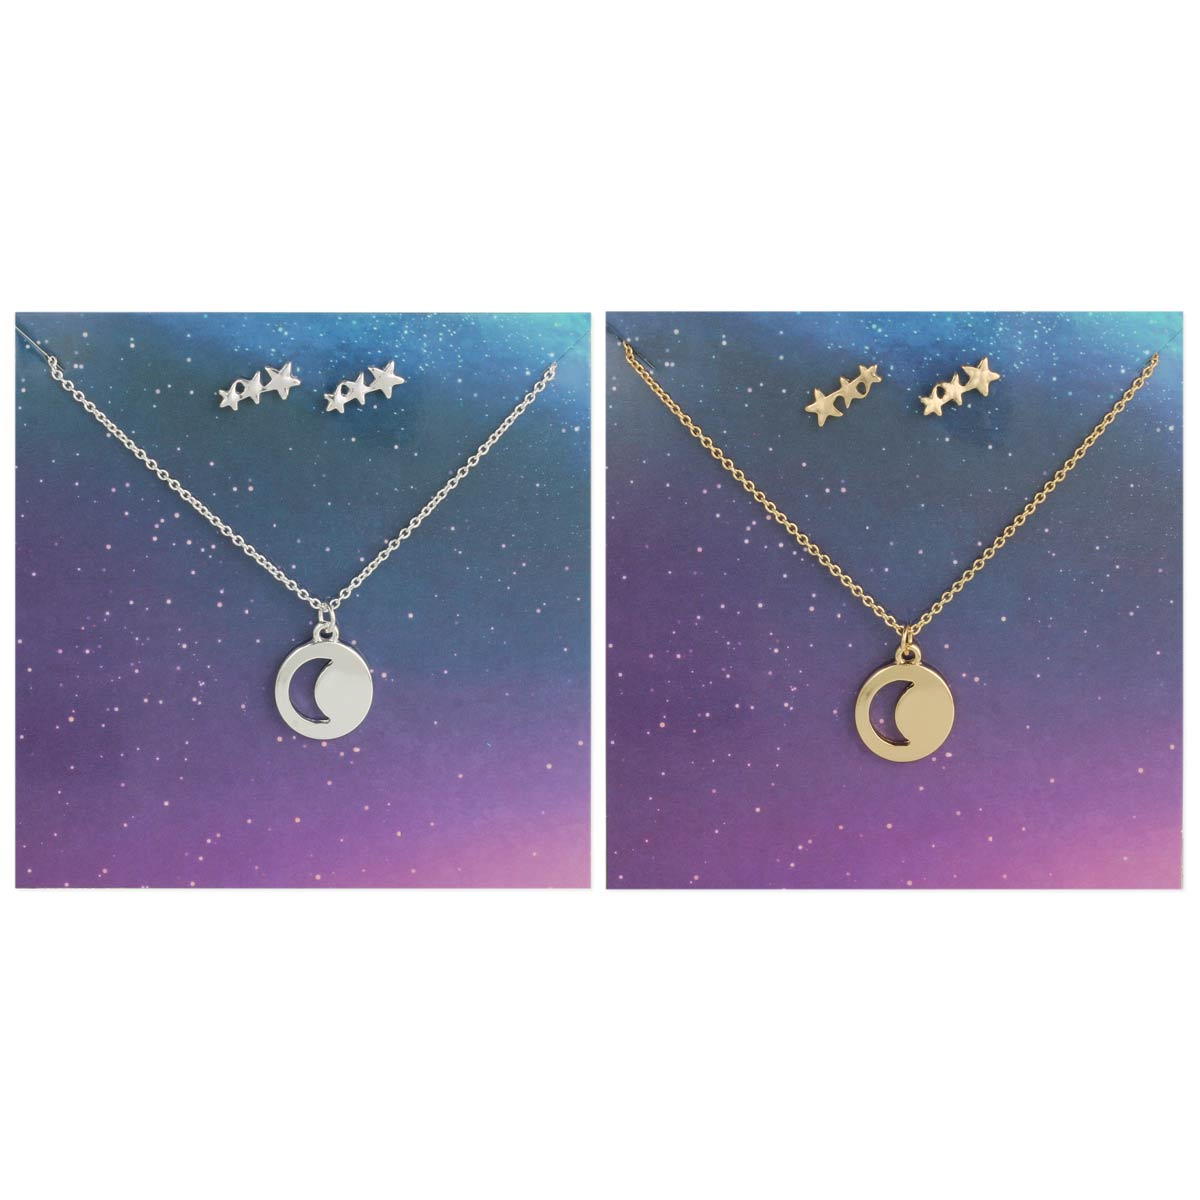 Carded Star & Moon Necklace Earring Set